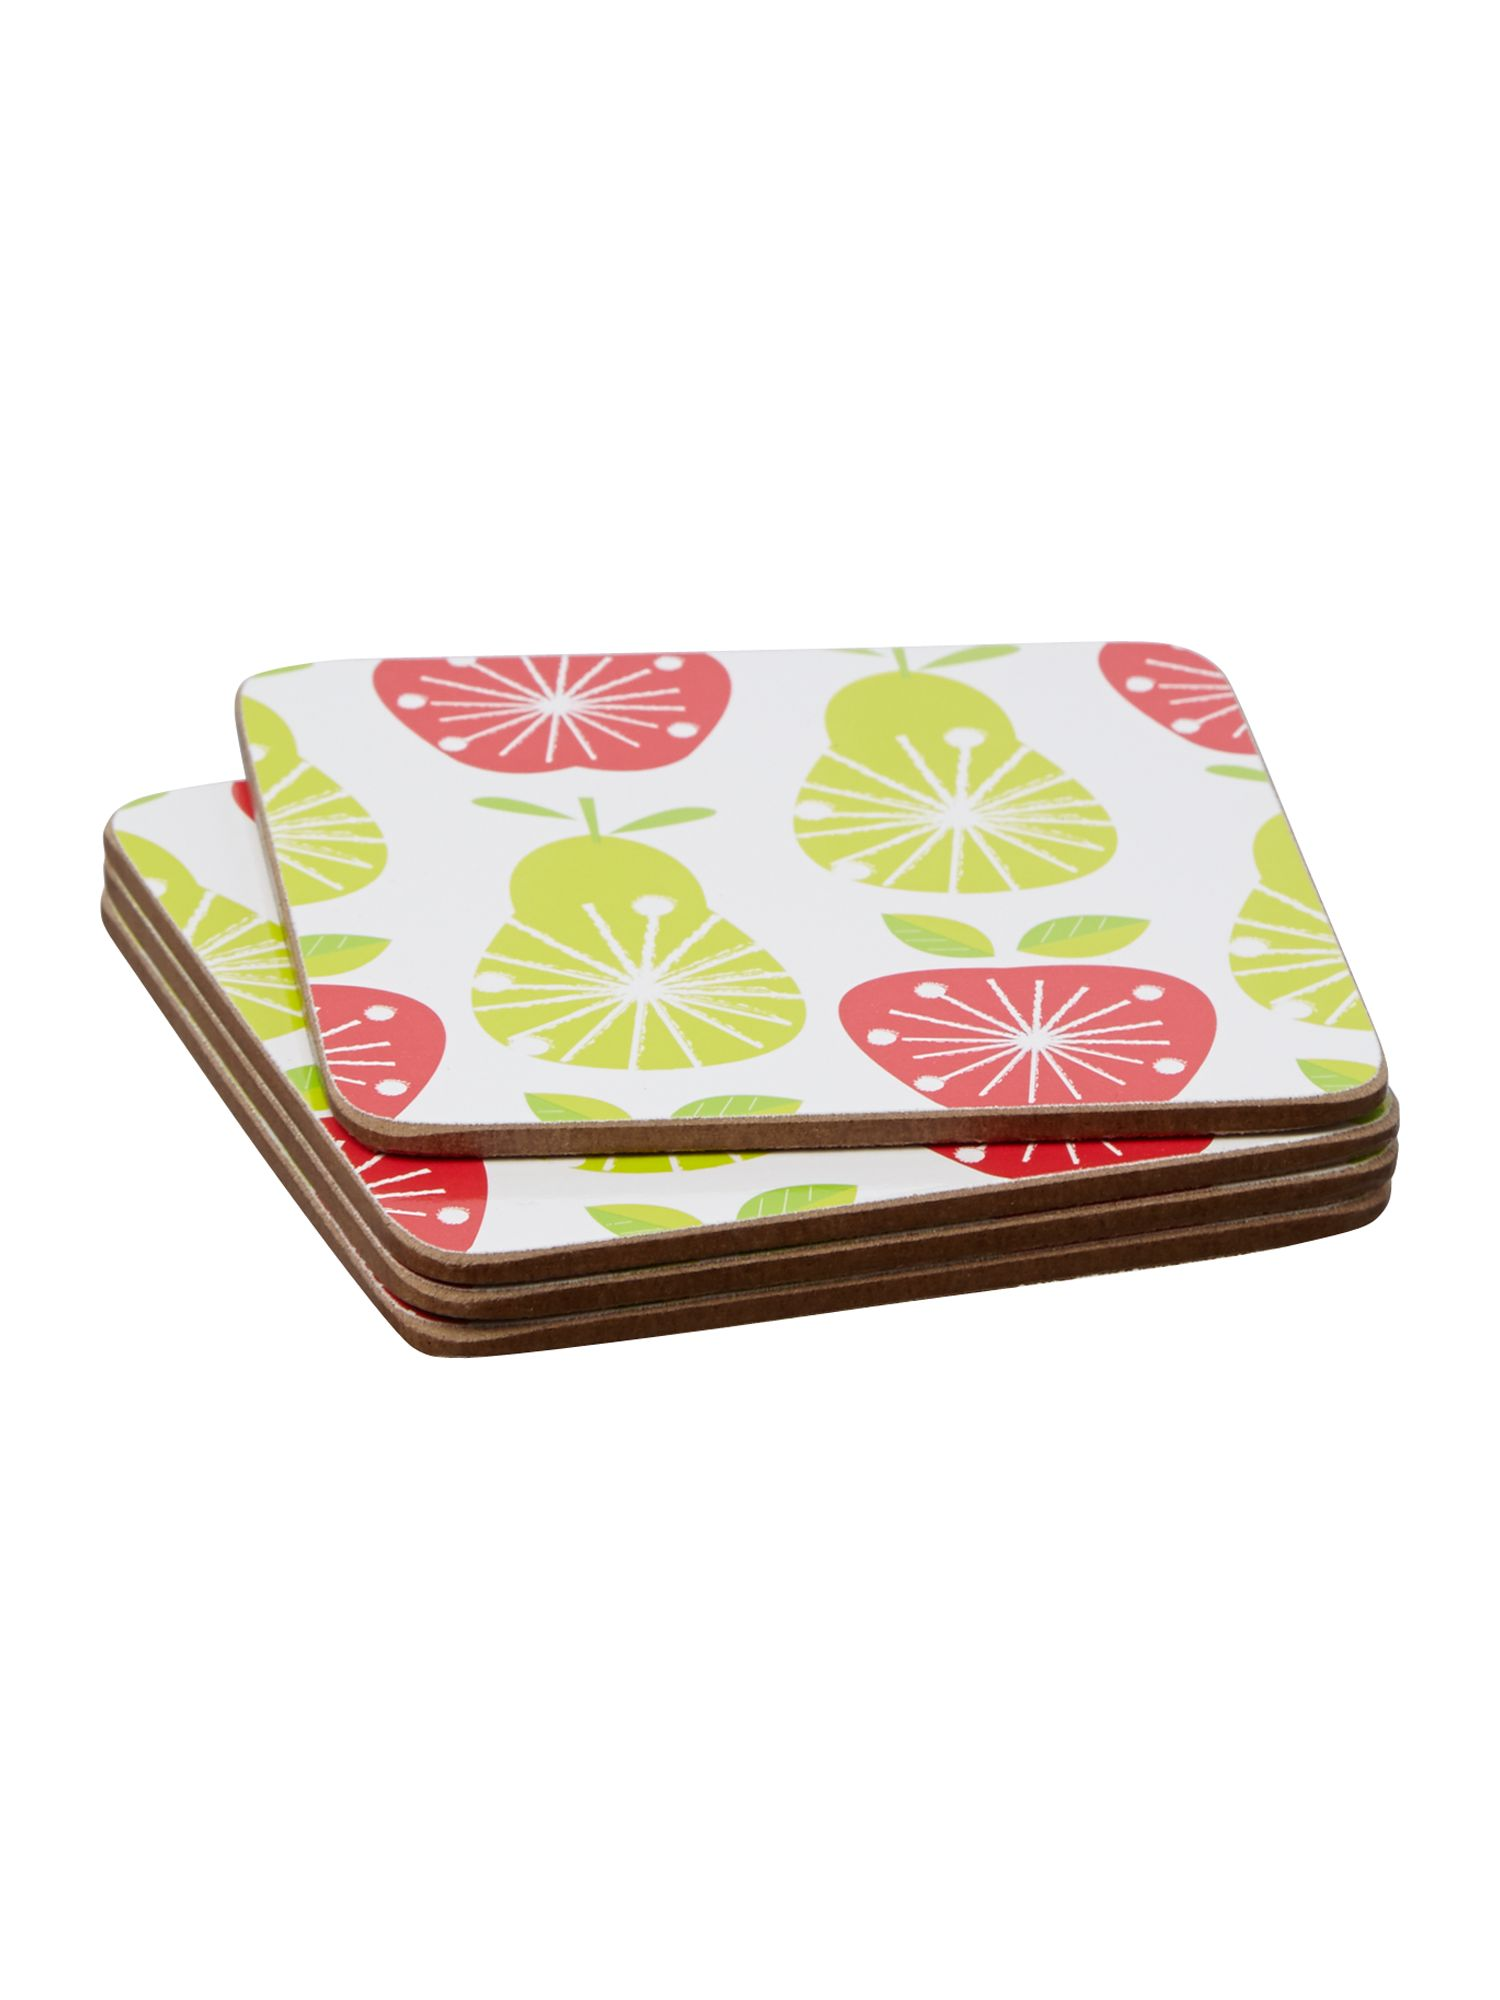 Fruit Salad Coasters set of 4